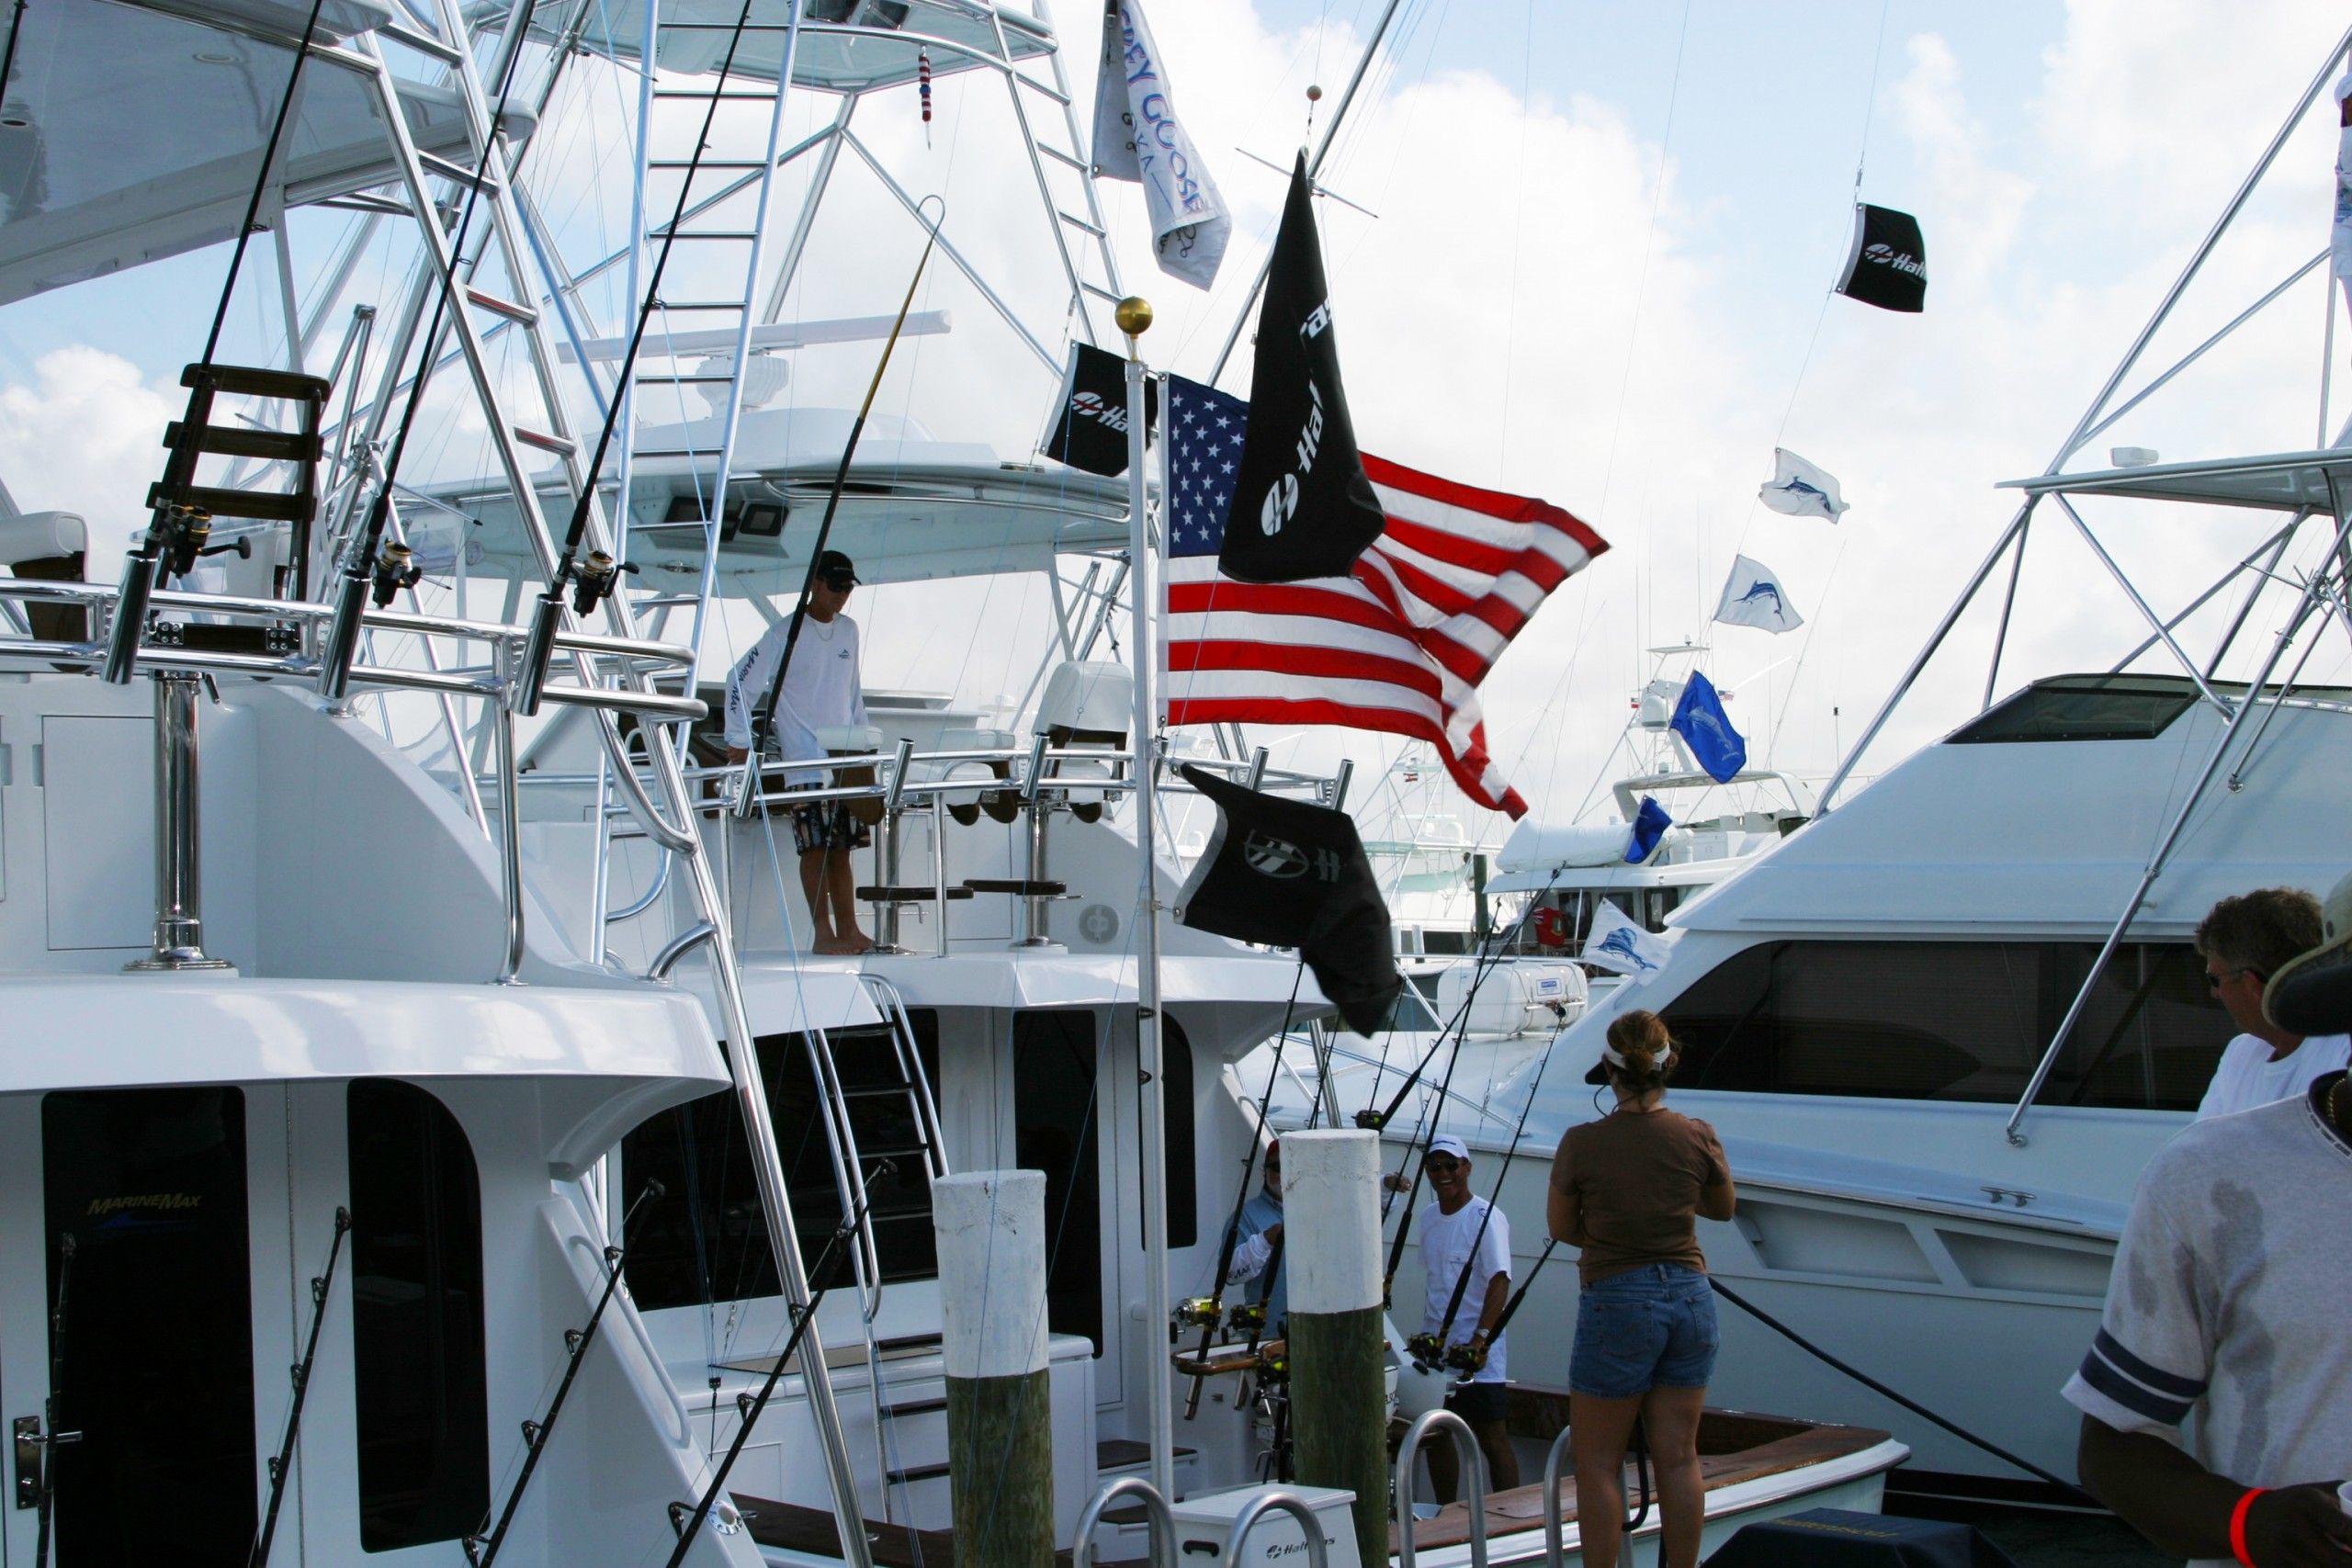 Canceled Plans, More Time Brought New Wave of Boaters, Anglers in 2020, Study Finds